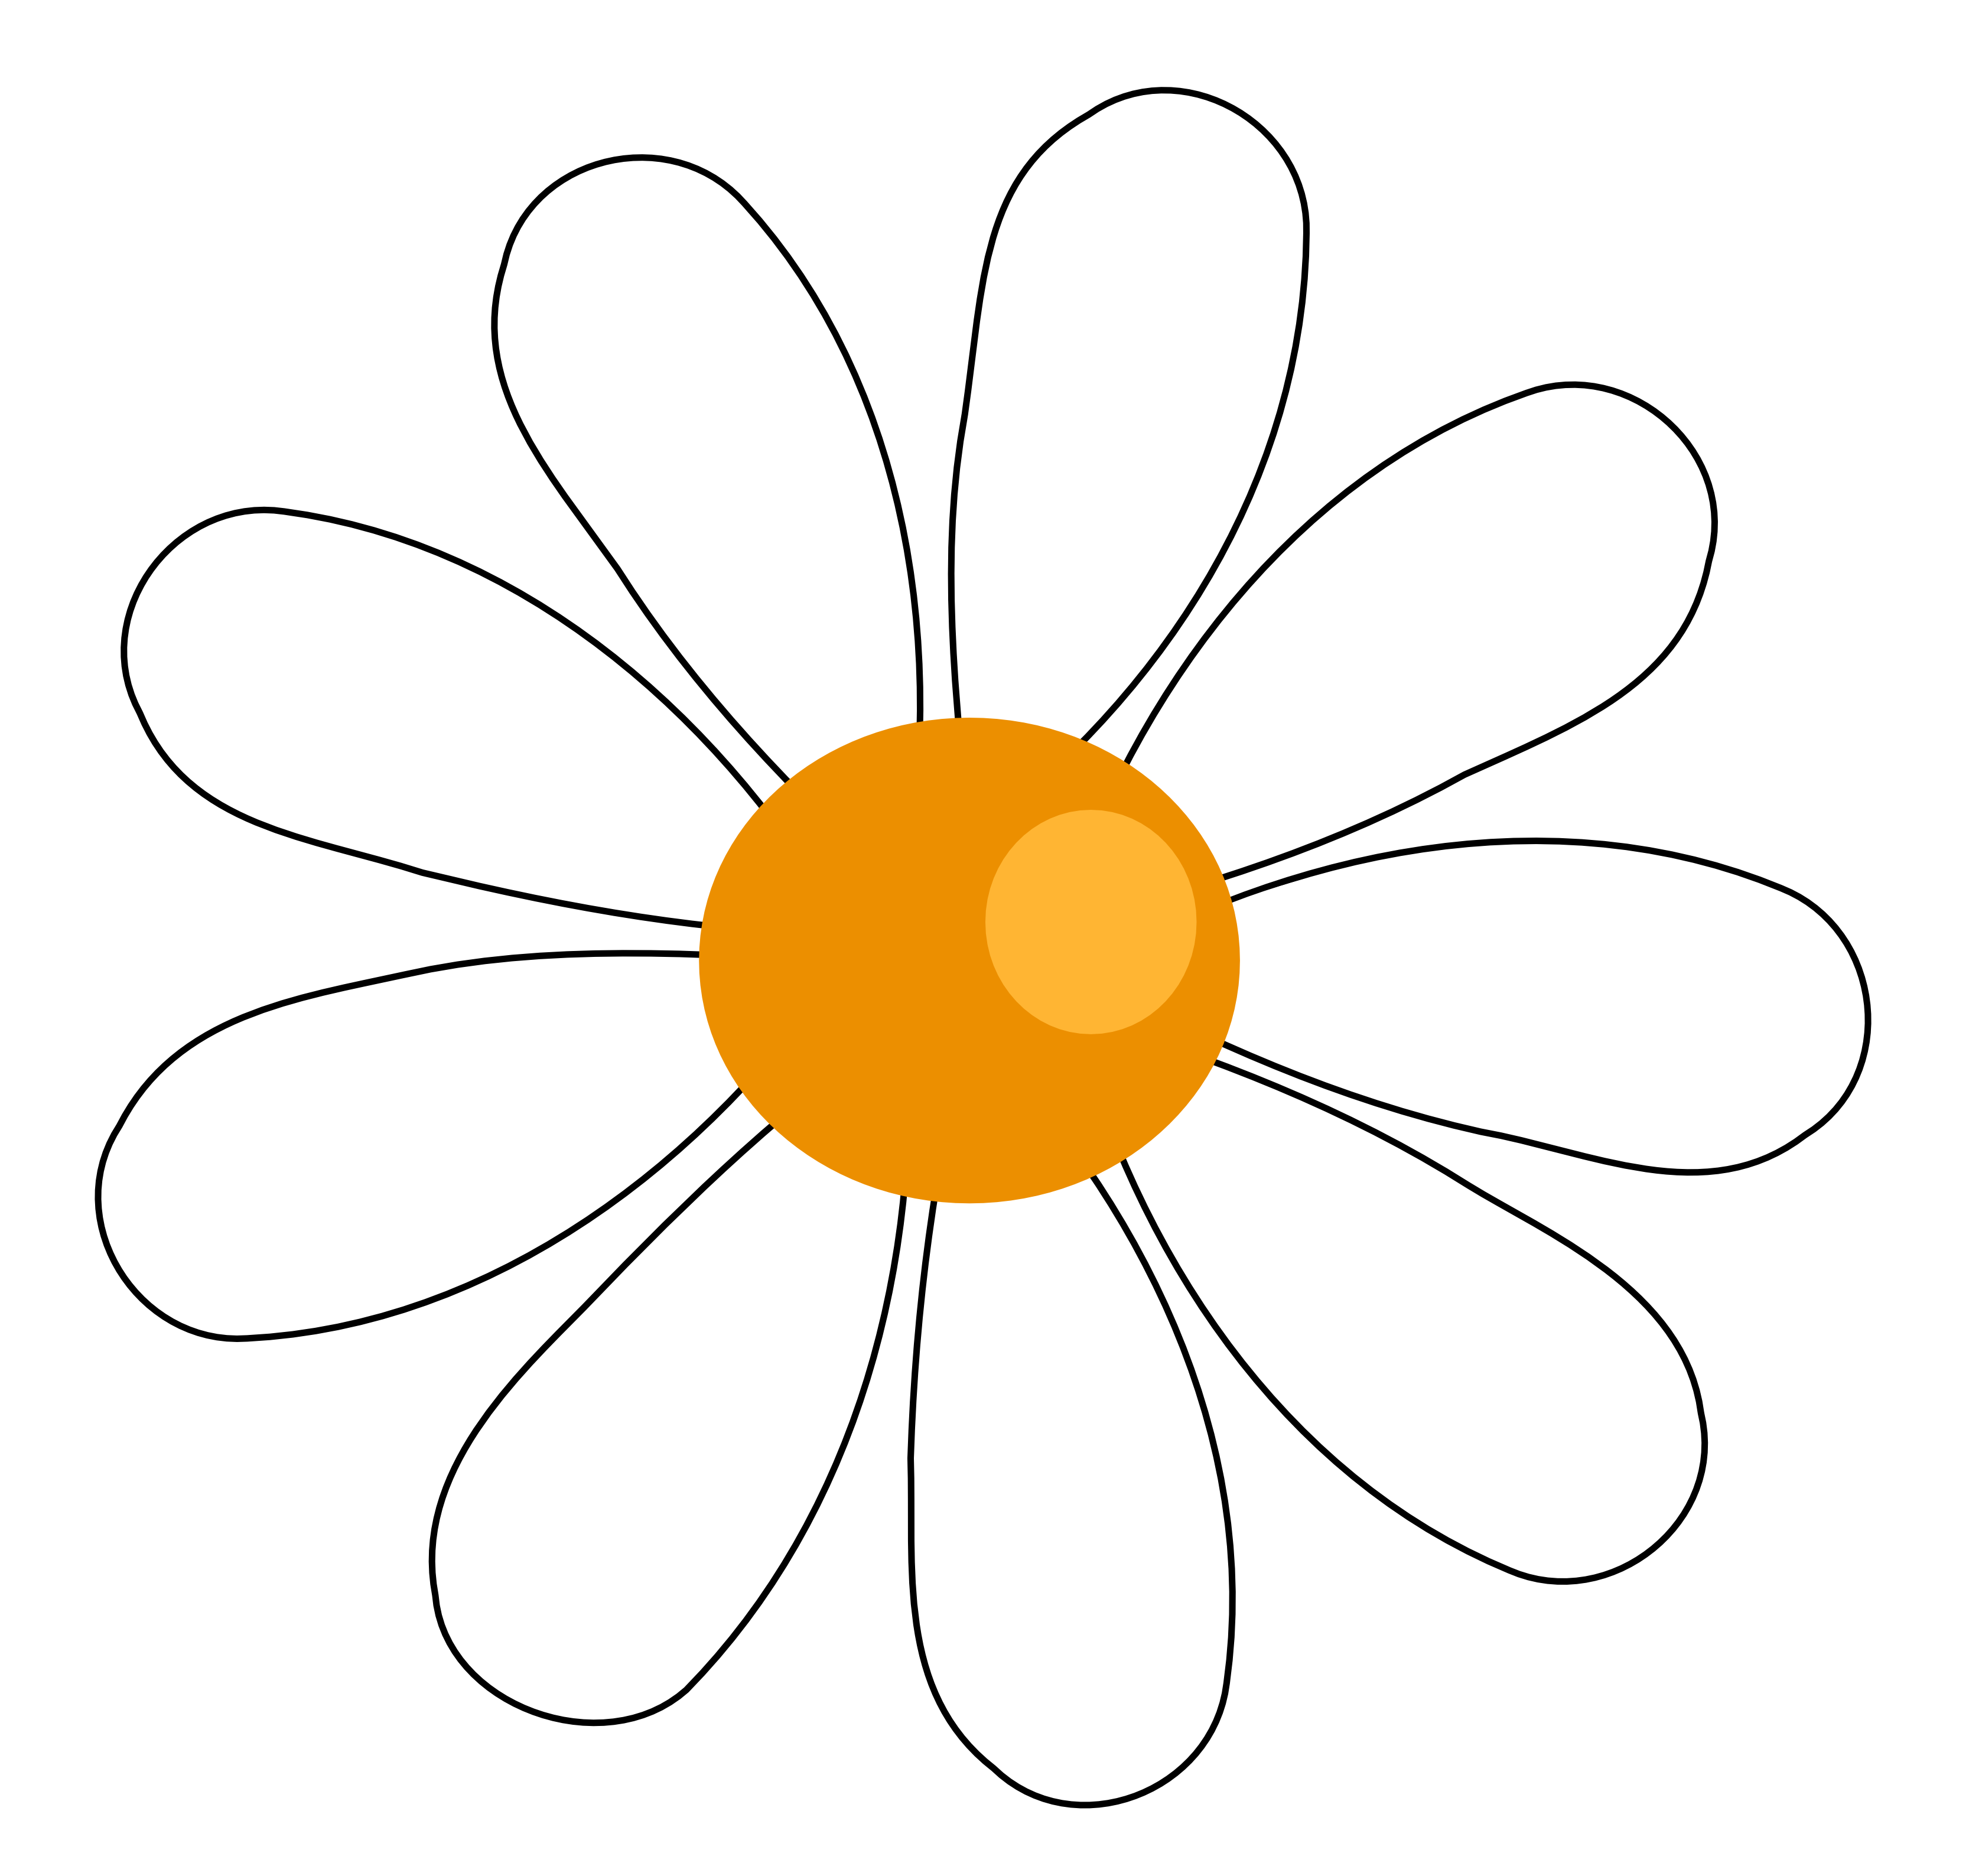 Daisy Clip Art Flowers | Clipart Panda - Free Clipart Images